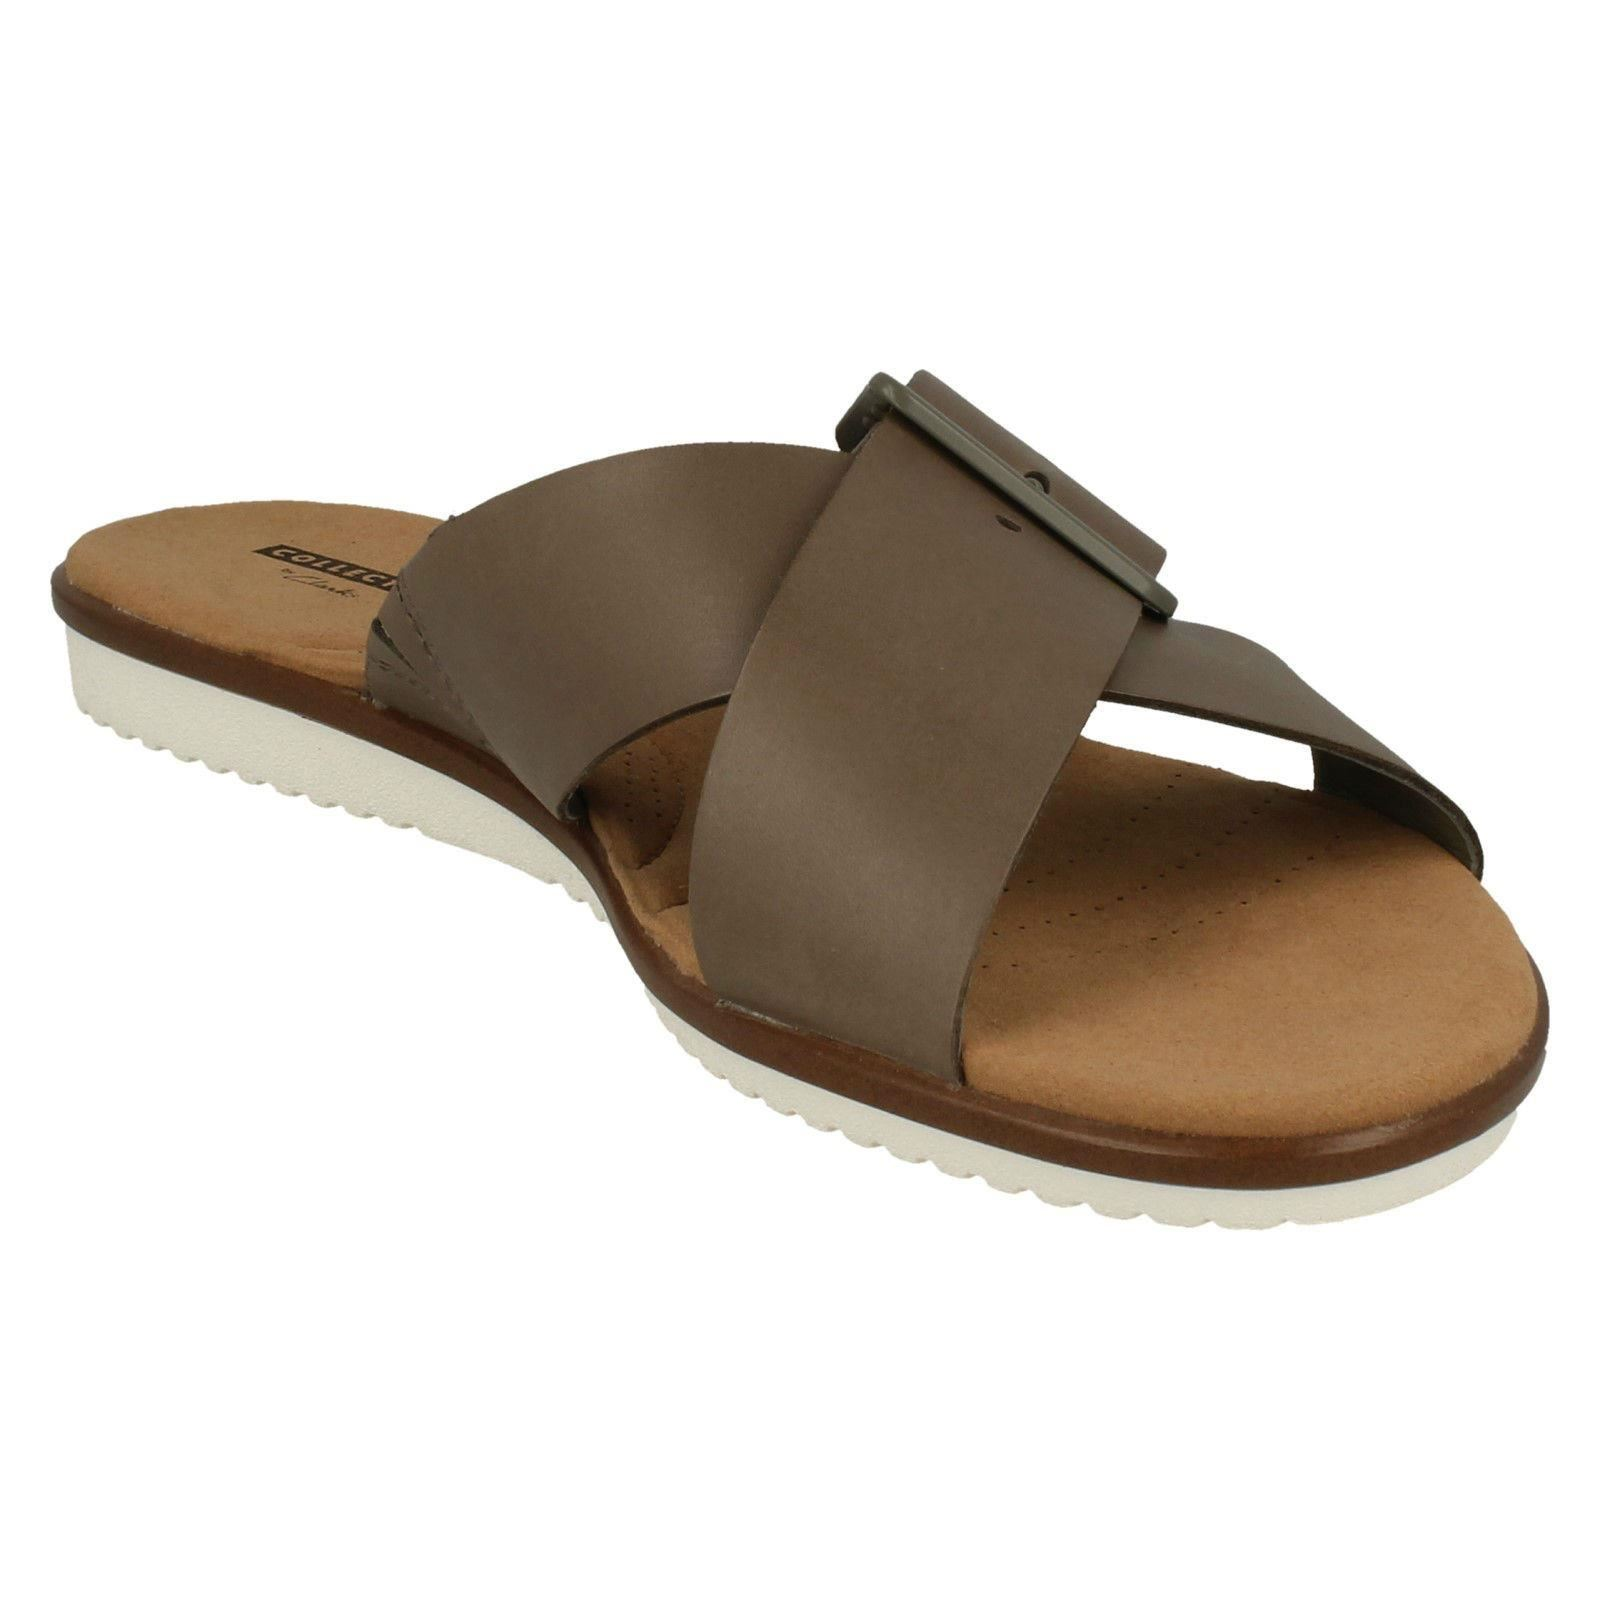 Ladies Clarks Kele Heather Slip Slip Heather On Sandals 15eaa4